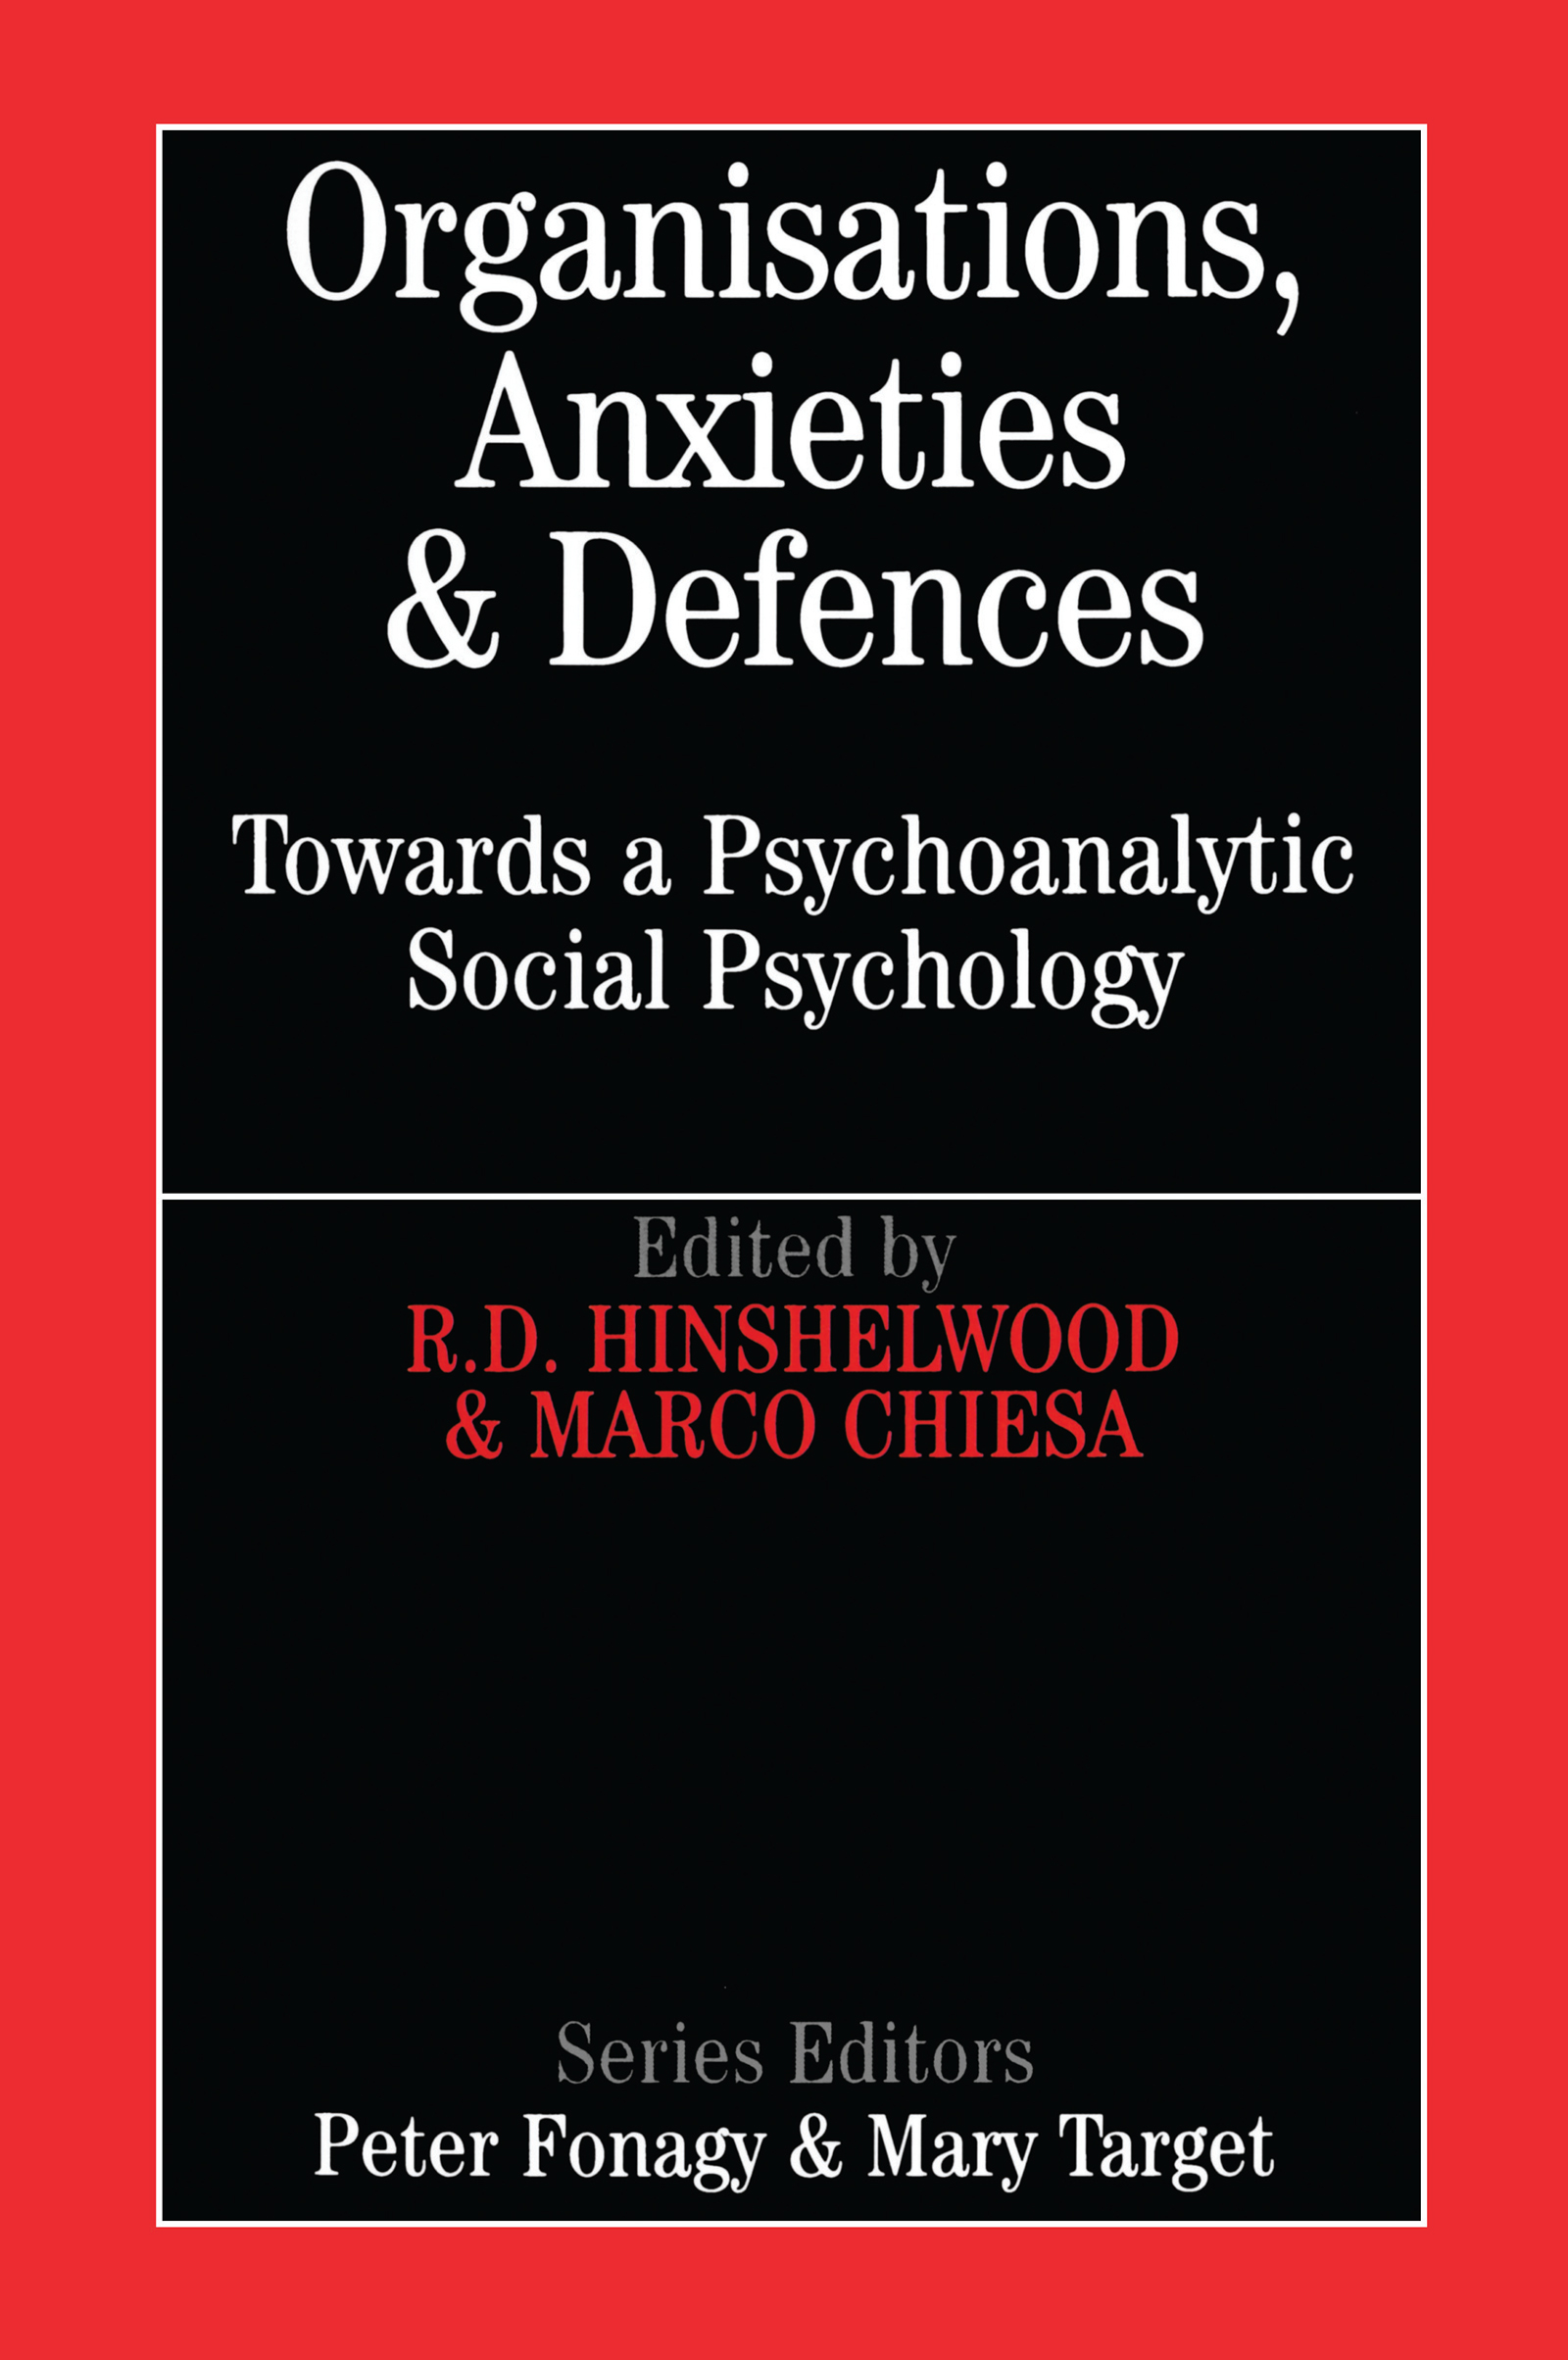 Organisations, Anxieties and Defences